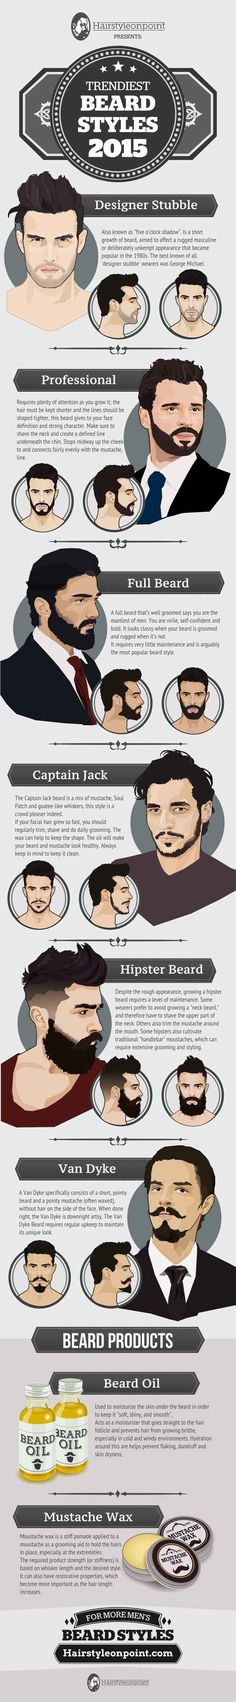 Thankfully, the people over at men's style blog Hairstyleonpoint created a cool chart detailing the latest trends in beards, along with some products to maintain the look.